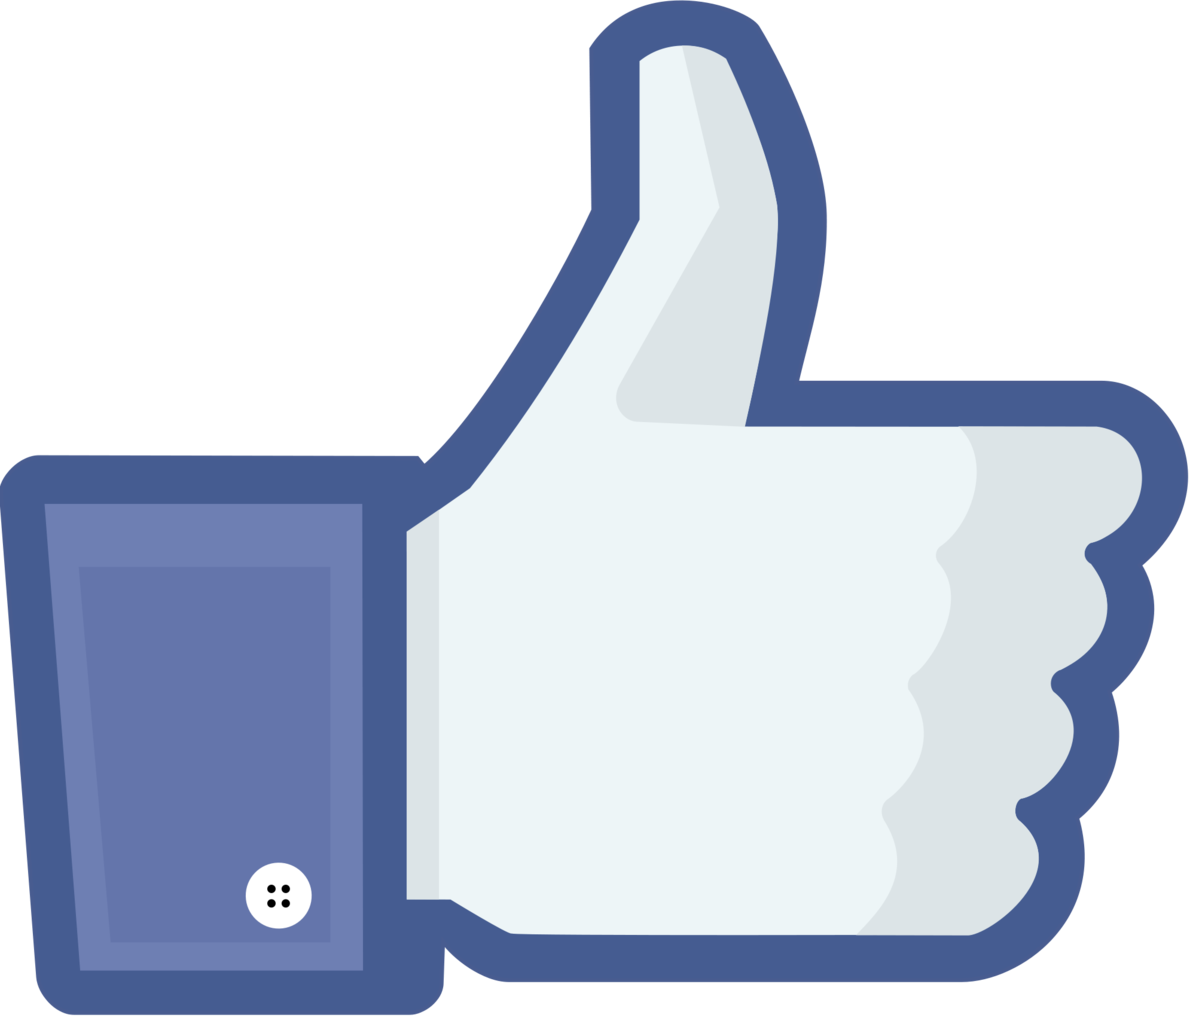 Facebook's thumbs up Like symbol